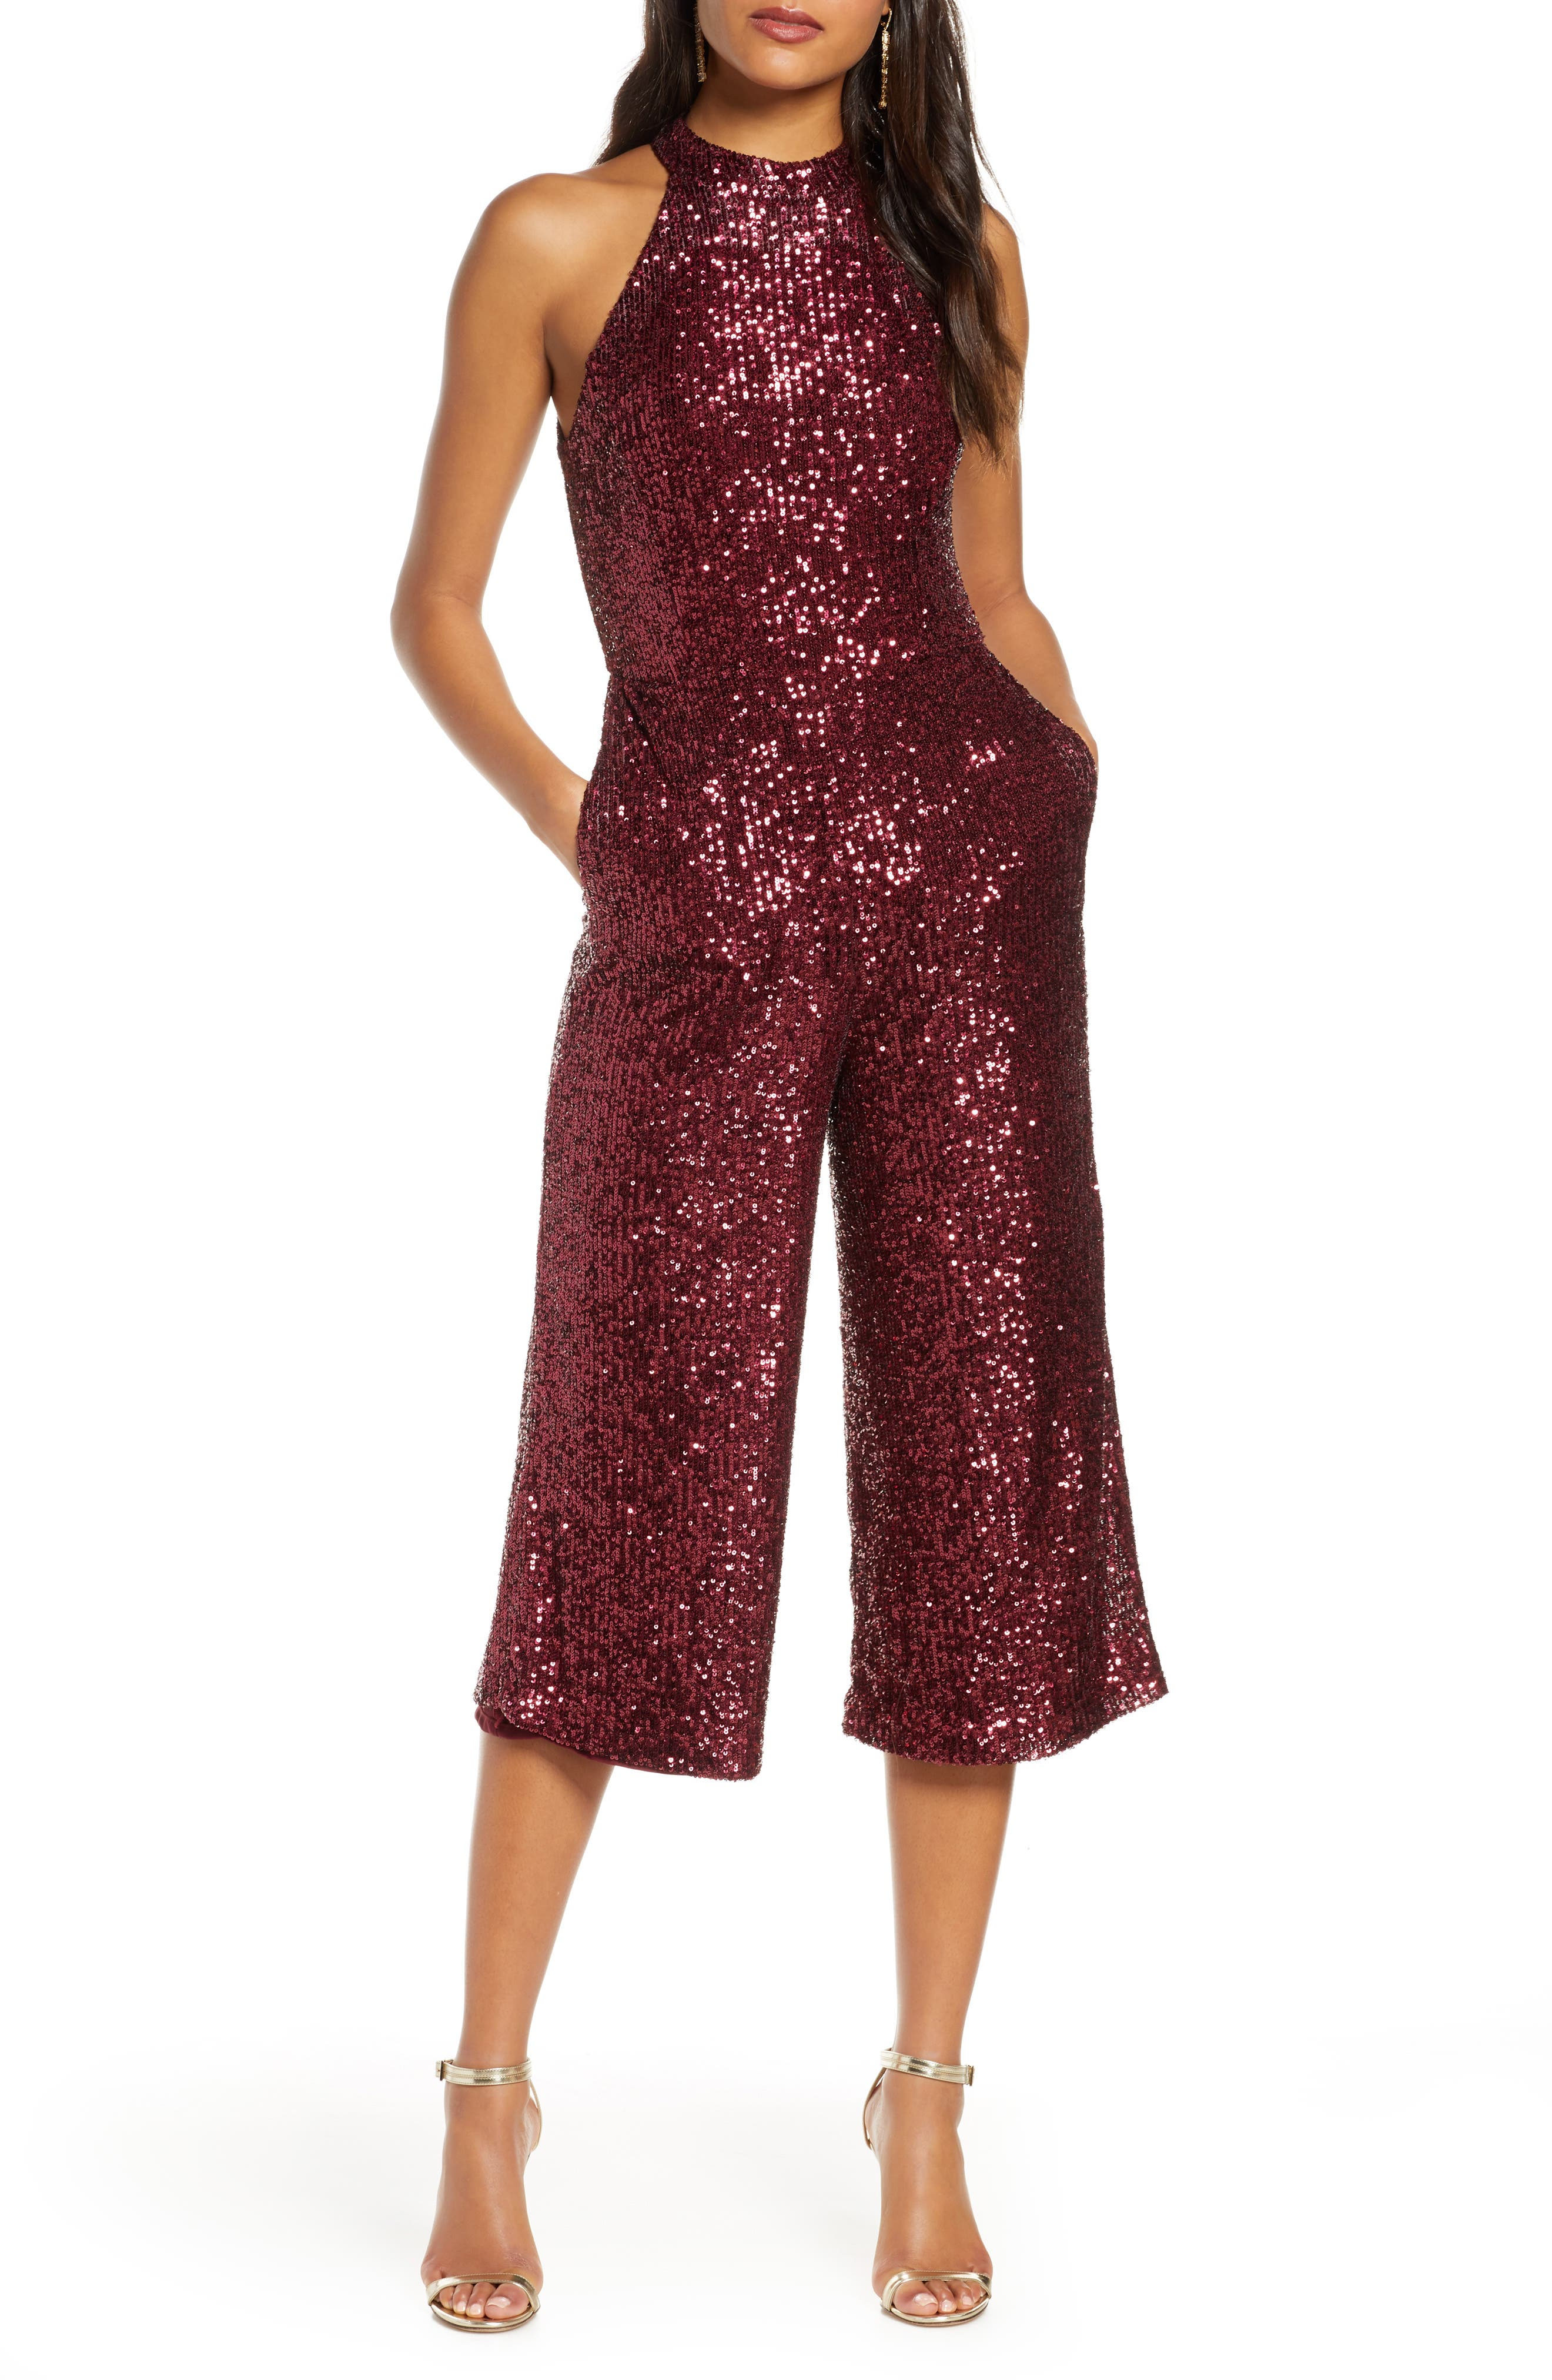 70s Jumpsuit | Disco Jumpsuits, Sequin Rompers Womens Forest Lily Crop Sequin Jumpsuit Size 10 - Red $140.00 AT vintagedancer.com